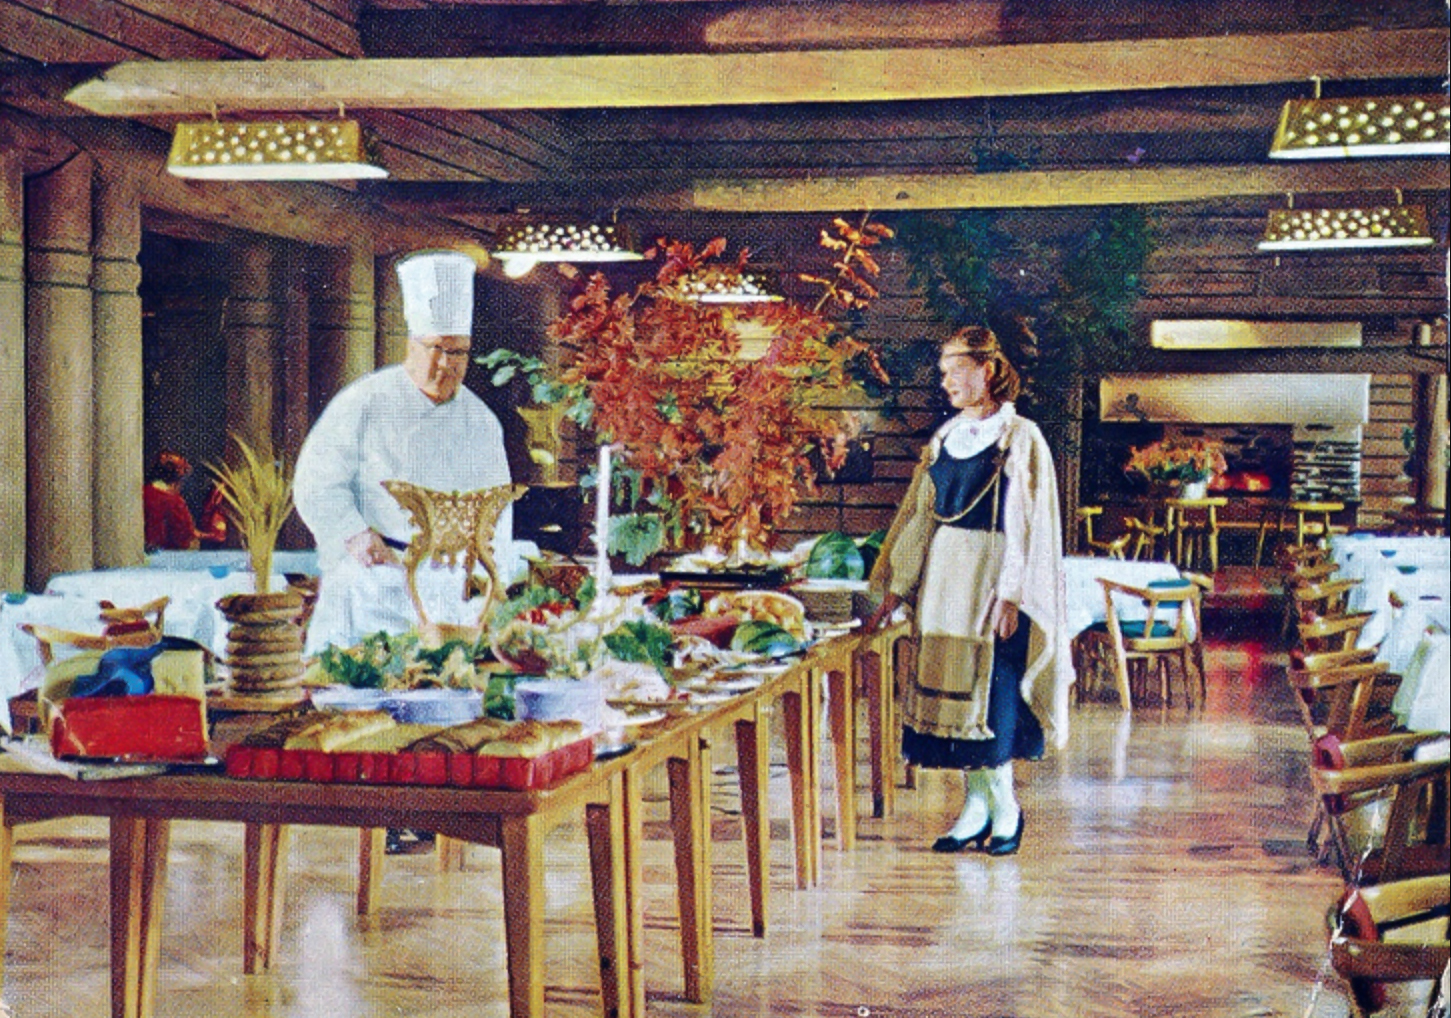 Postcard by Restaurant Kestikartano, featuring Pohjan Sali, early 1960s. Photographer unknown, Private collection.